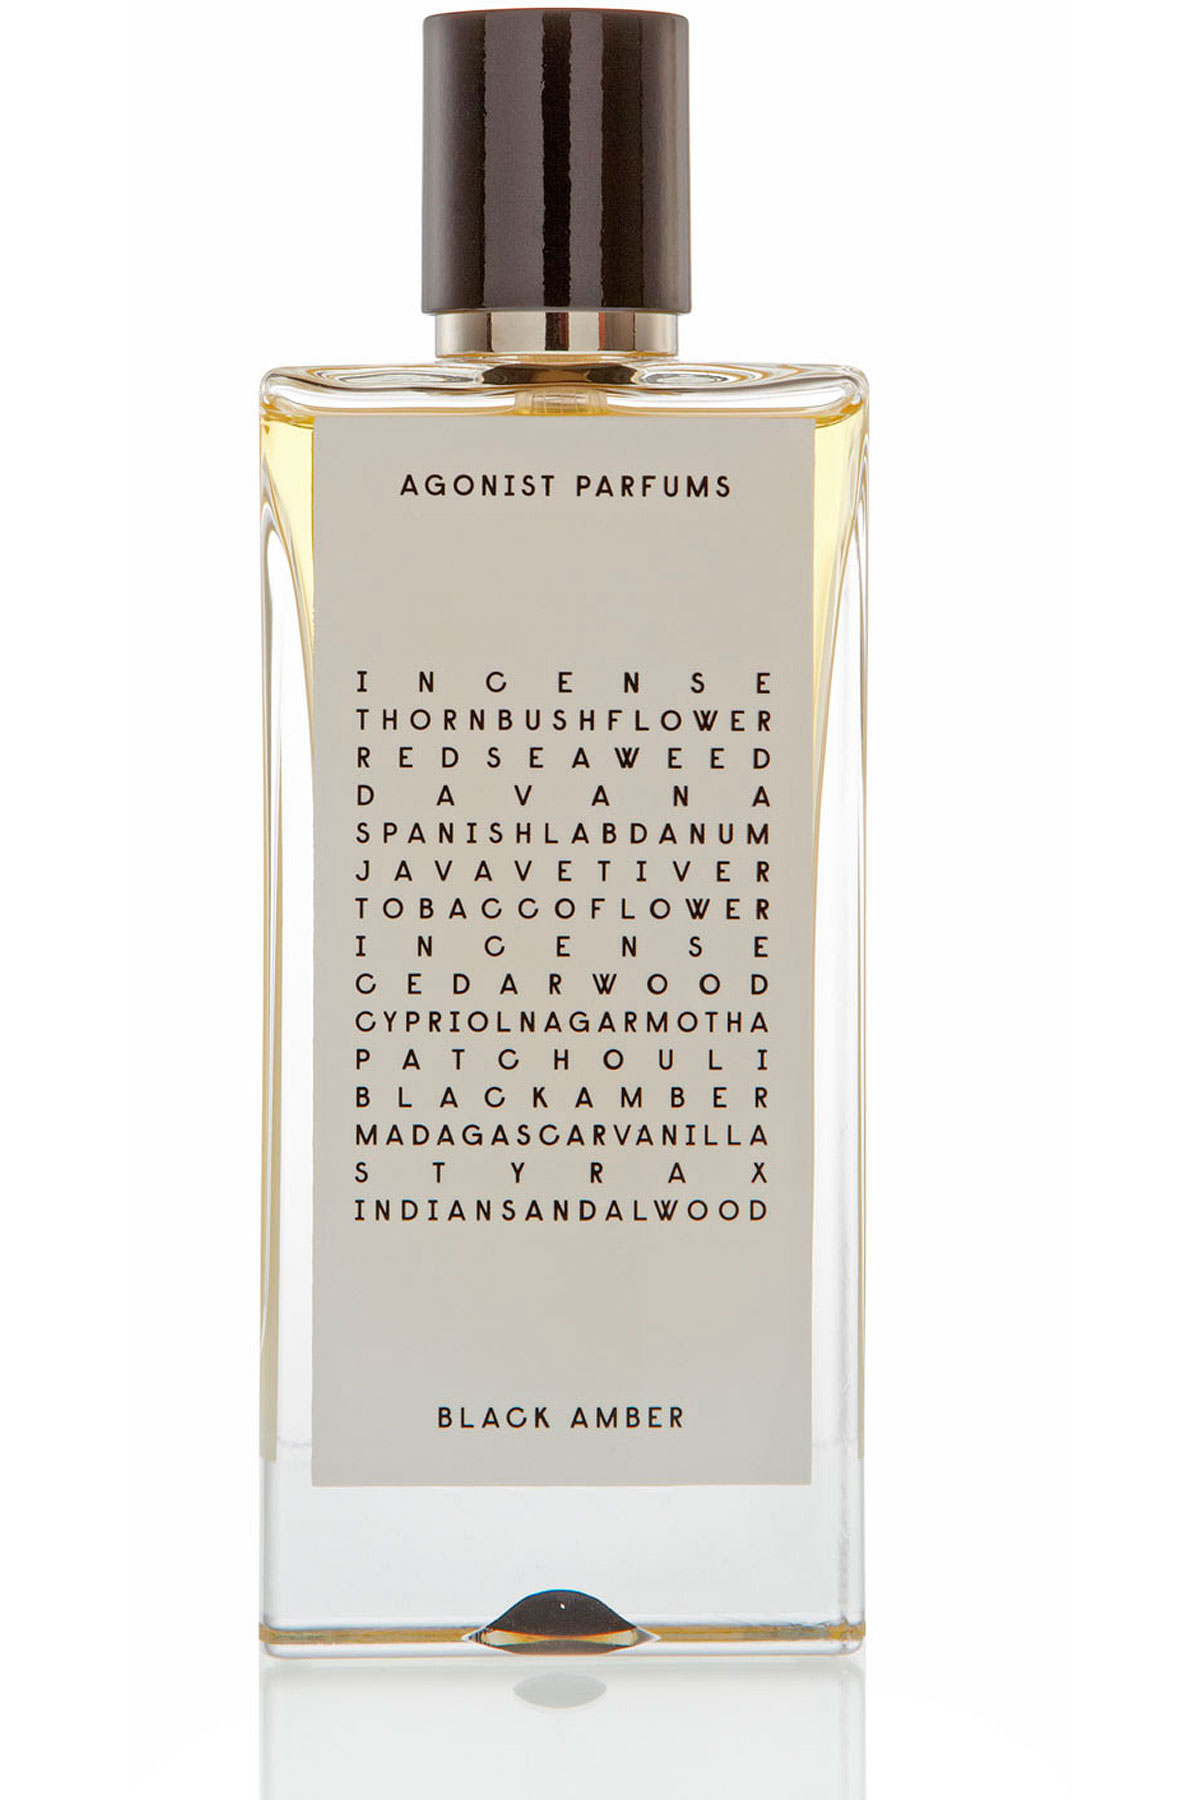 Agonist Fragrances for Women, Black Amber - Eau De Parfum - 50 Ml, 2019, 50 ml